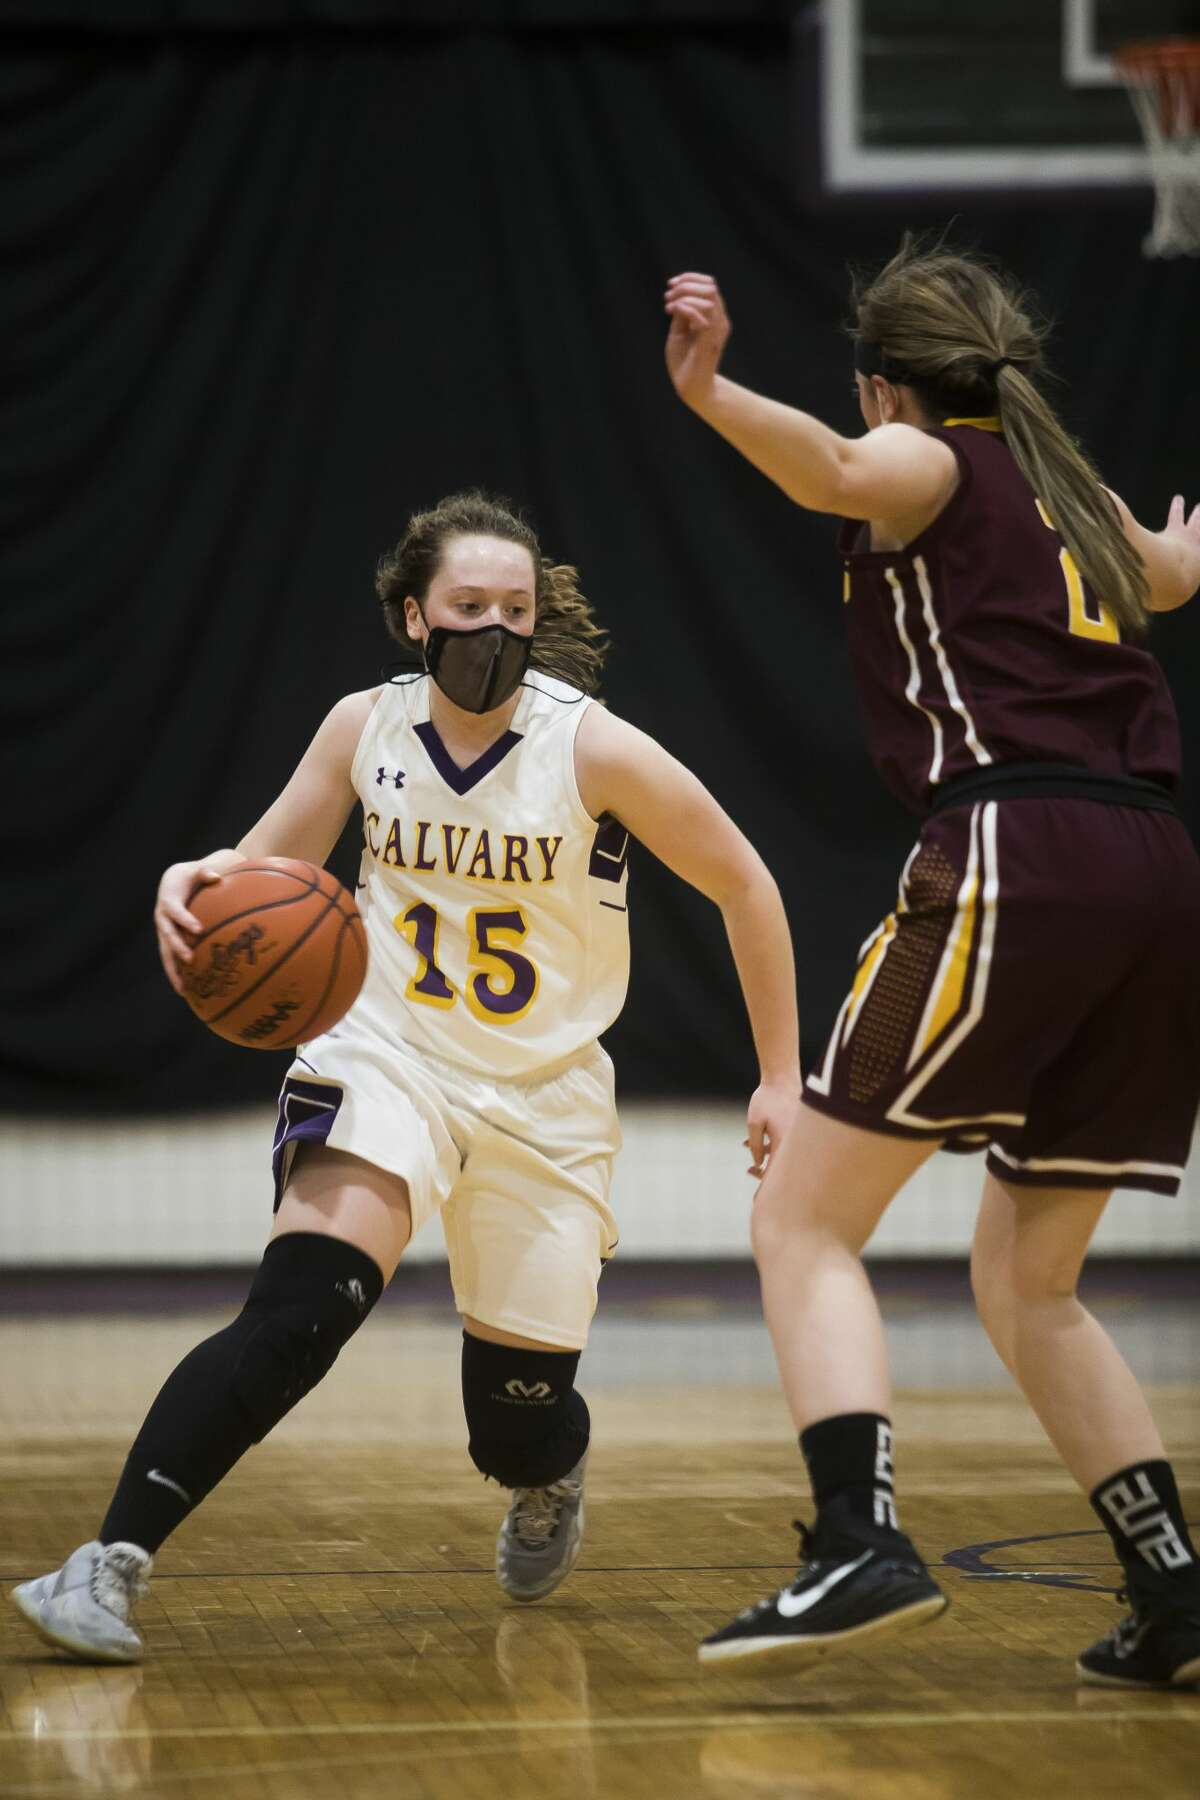 Calvary Baptist's Caitlyn Dickerson dribbles down the court during a game against Au Gres-Sims Monday, March 8, 2021 at Calvary Baptist Academy. (Katy Kildee/kkildee@mdn.net)